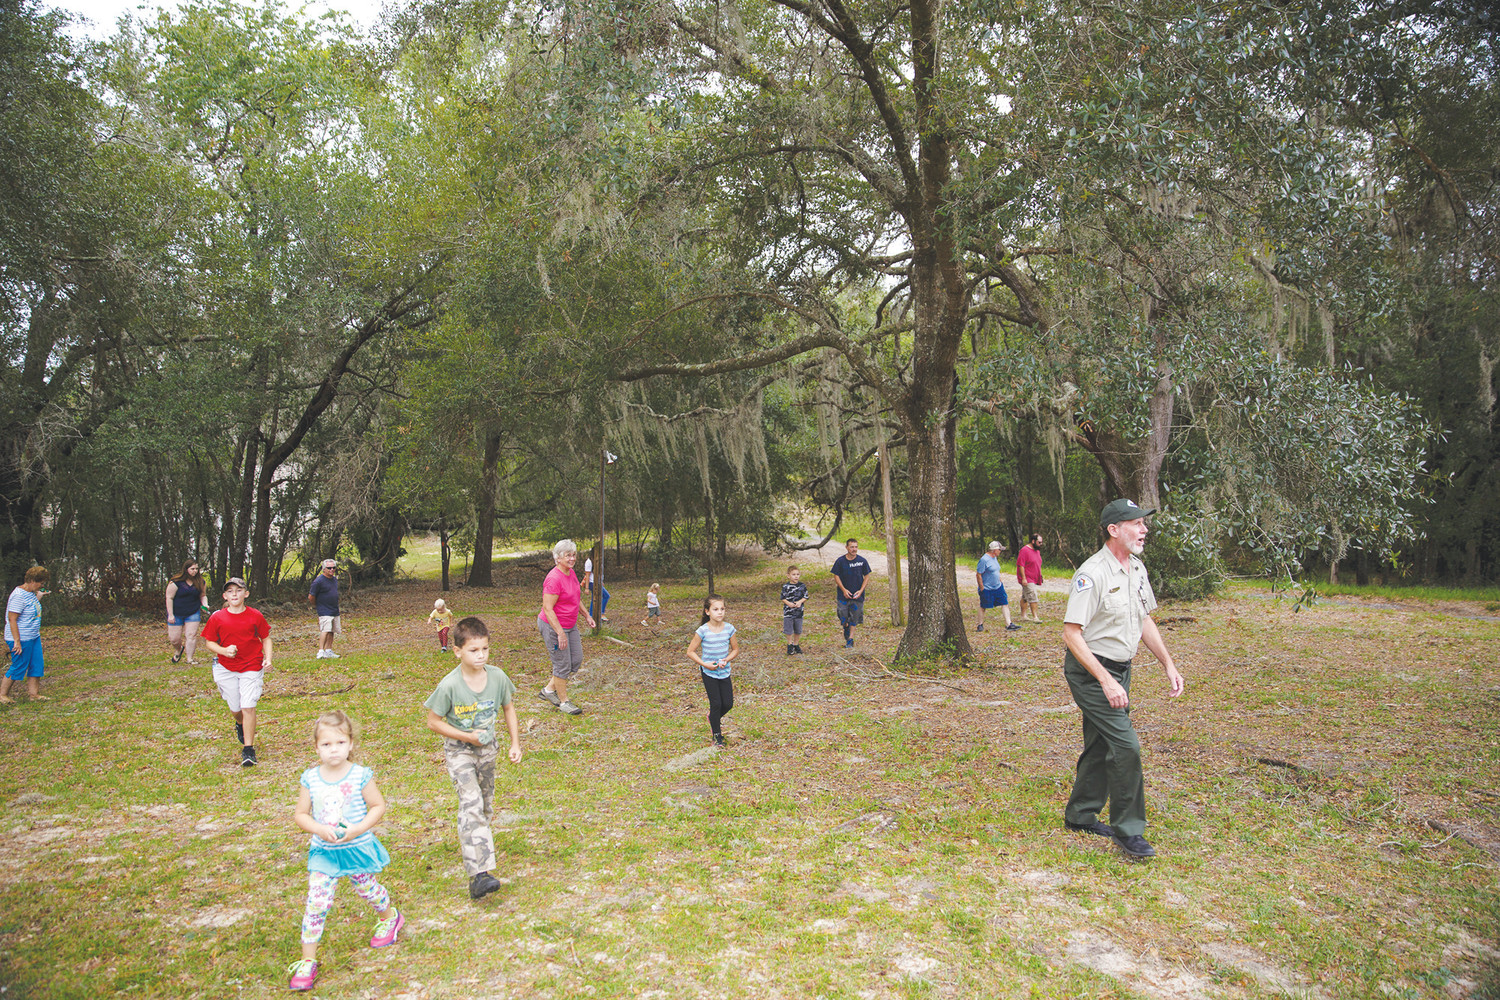 Park Ranger Steve Earl leads participants on a scavenger hunt during Gold Head Branch State Park's annual Read with the Trees event.